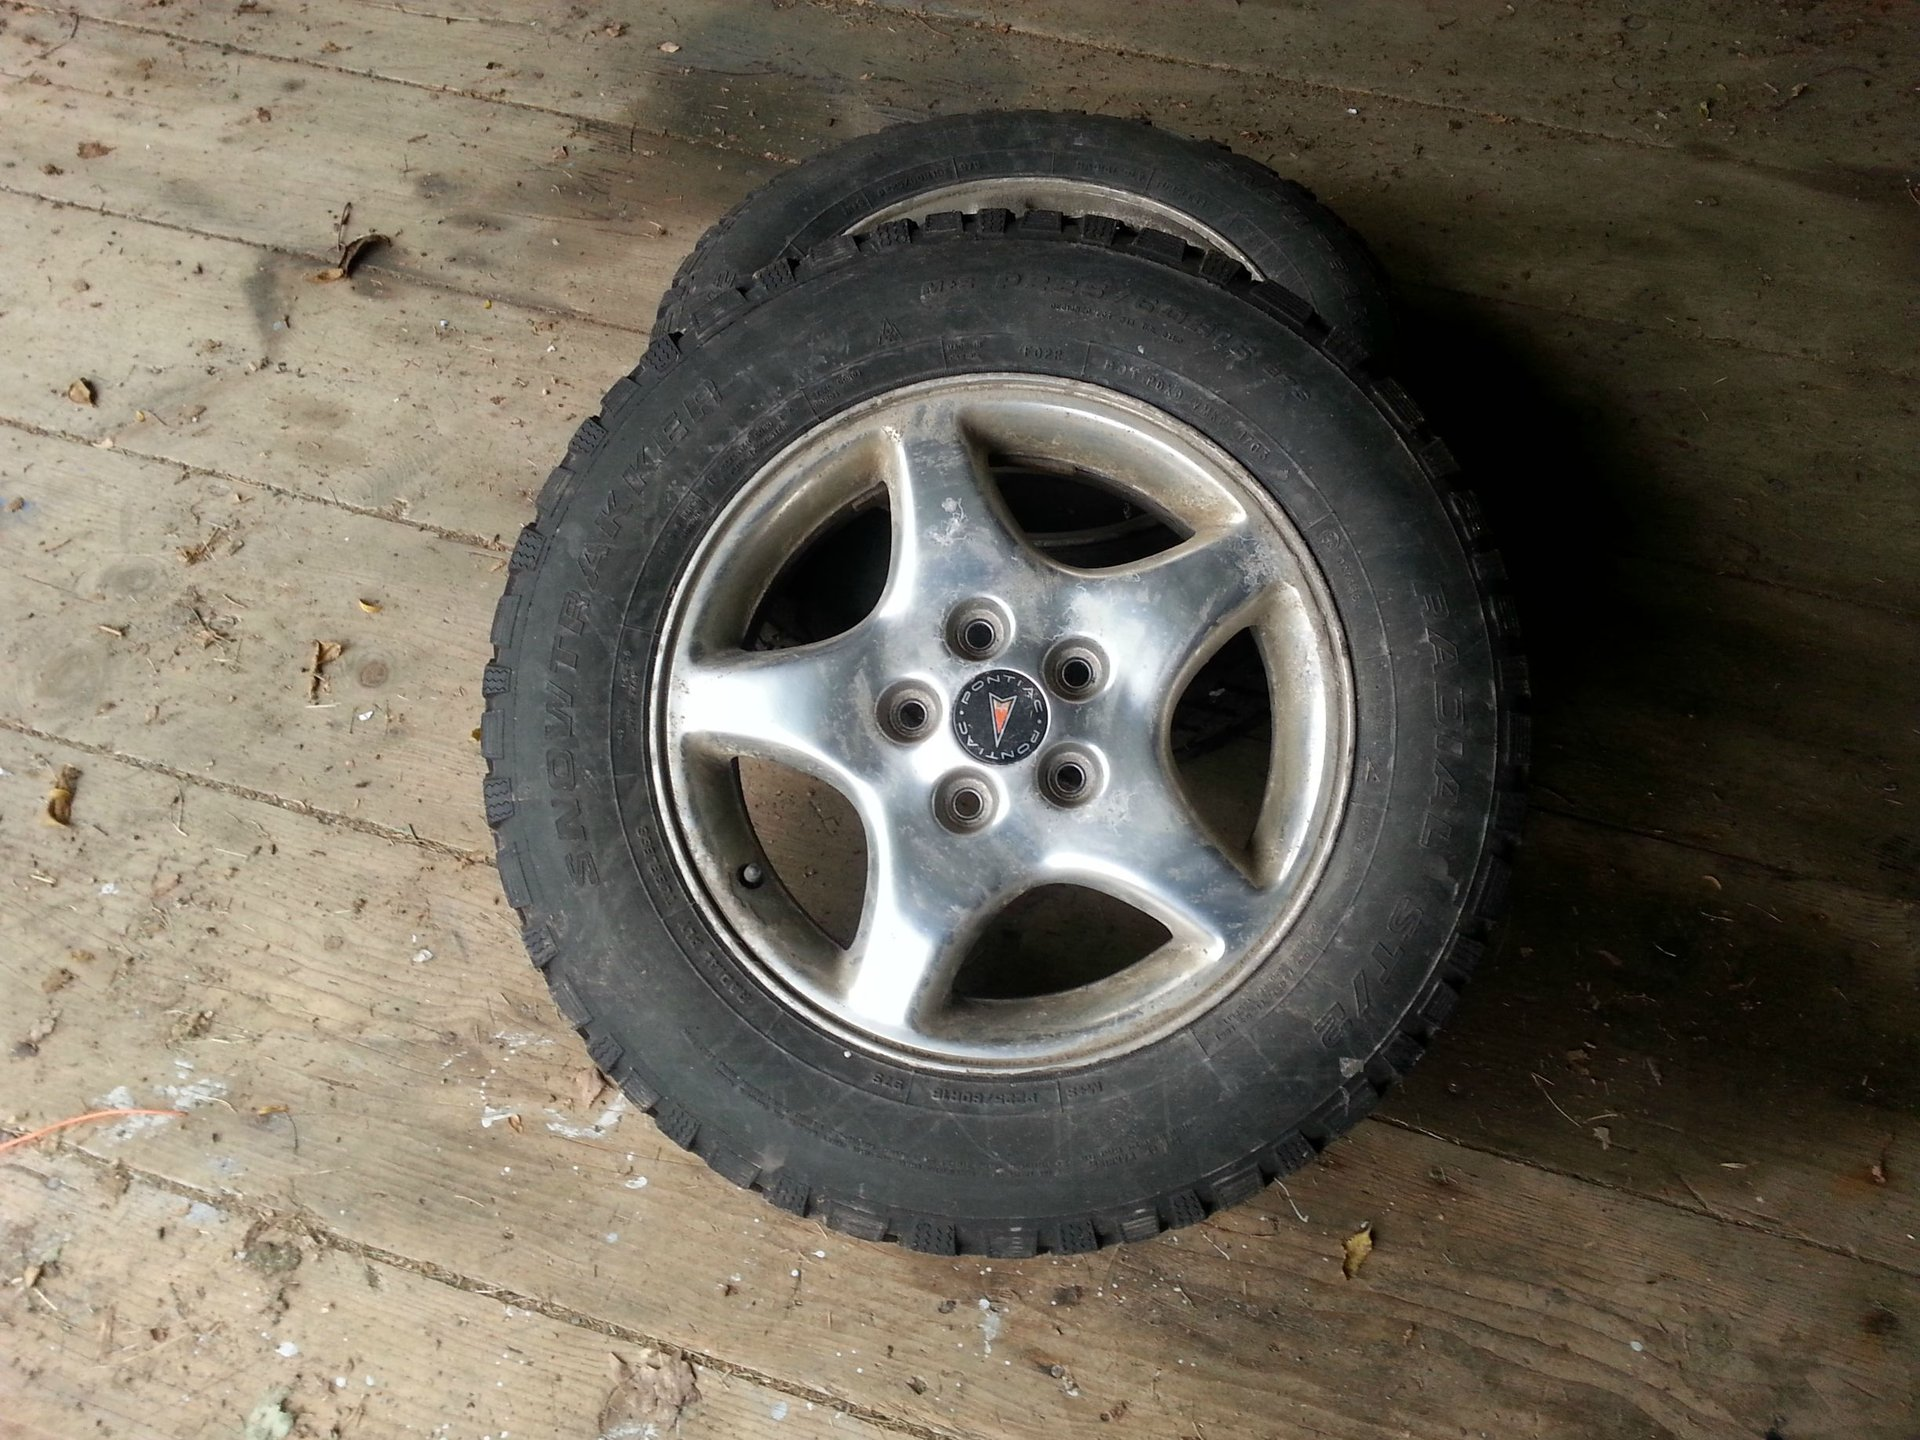 2012 Chevy Cruze Tire Size >> Will My Old Pontiac Rims With Winter Tires Fit Chevrolet